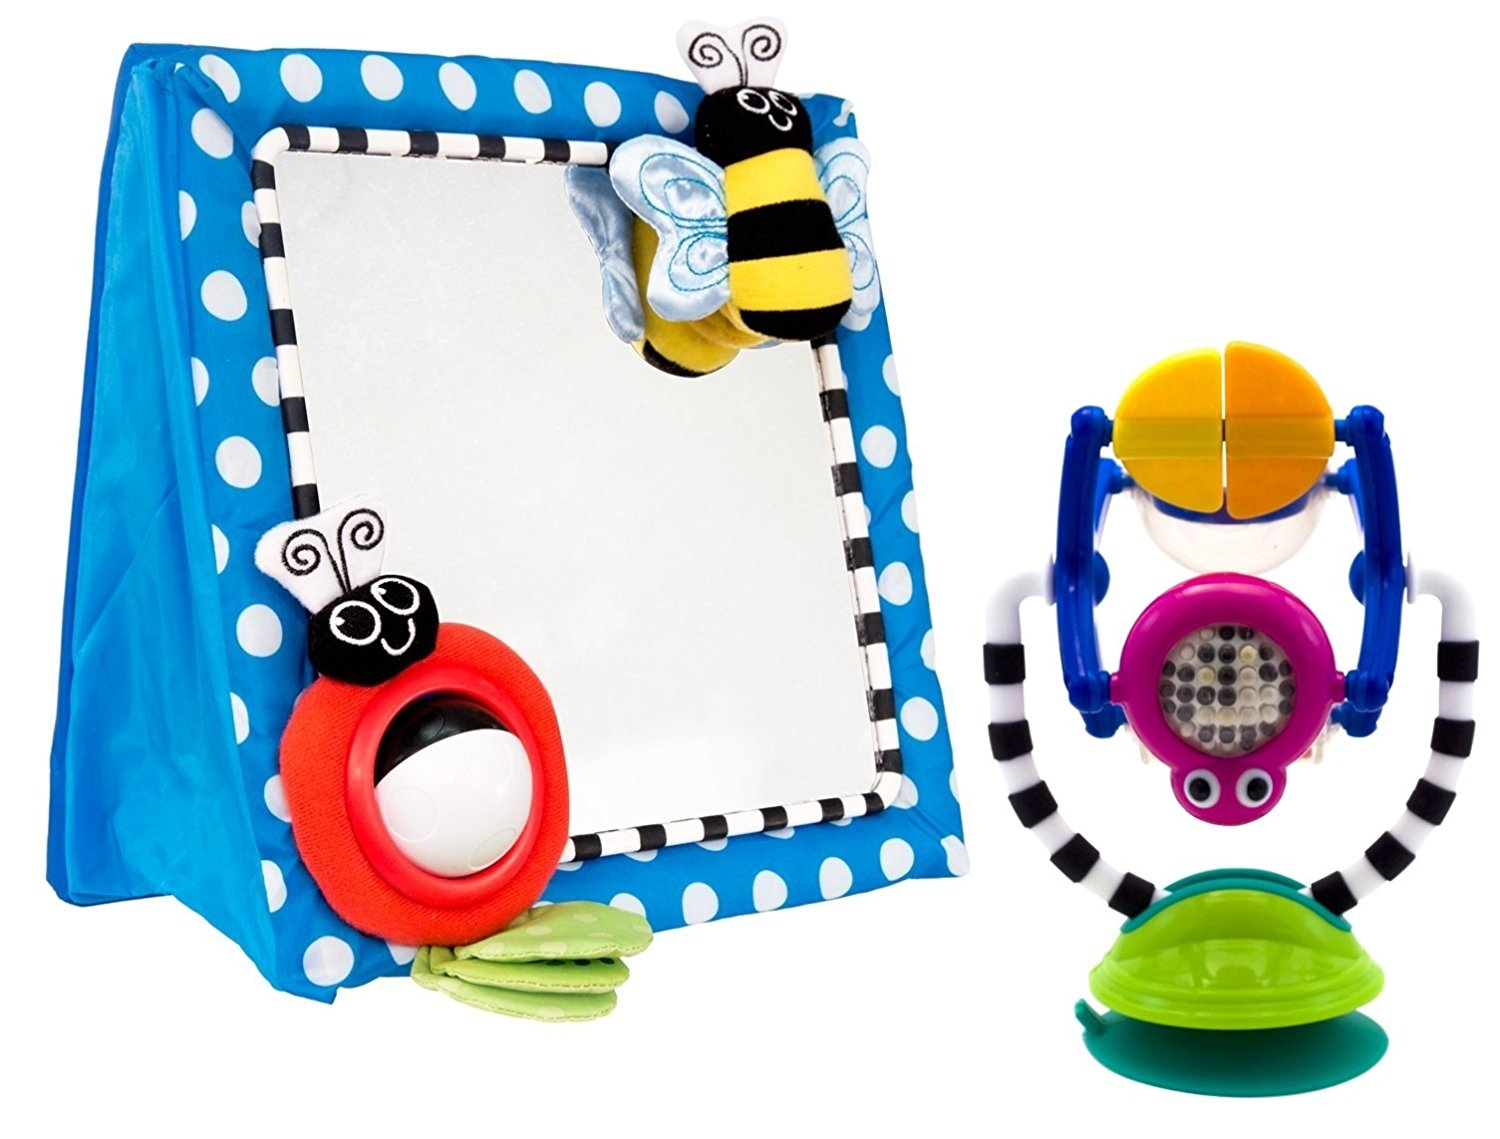 Floor Mirror with Sensation Station Activity Toy, Large Tru-Reflection Mirror engages baby's developing... by Sassy